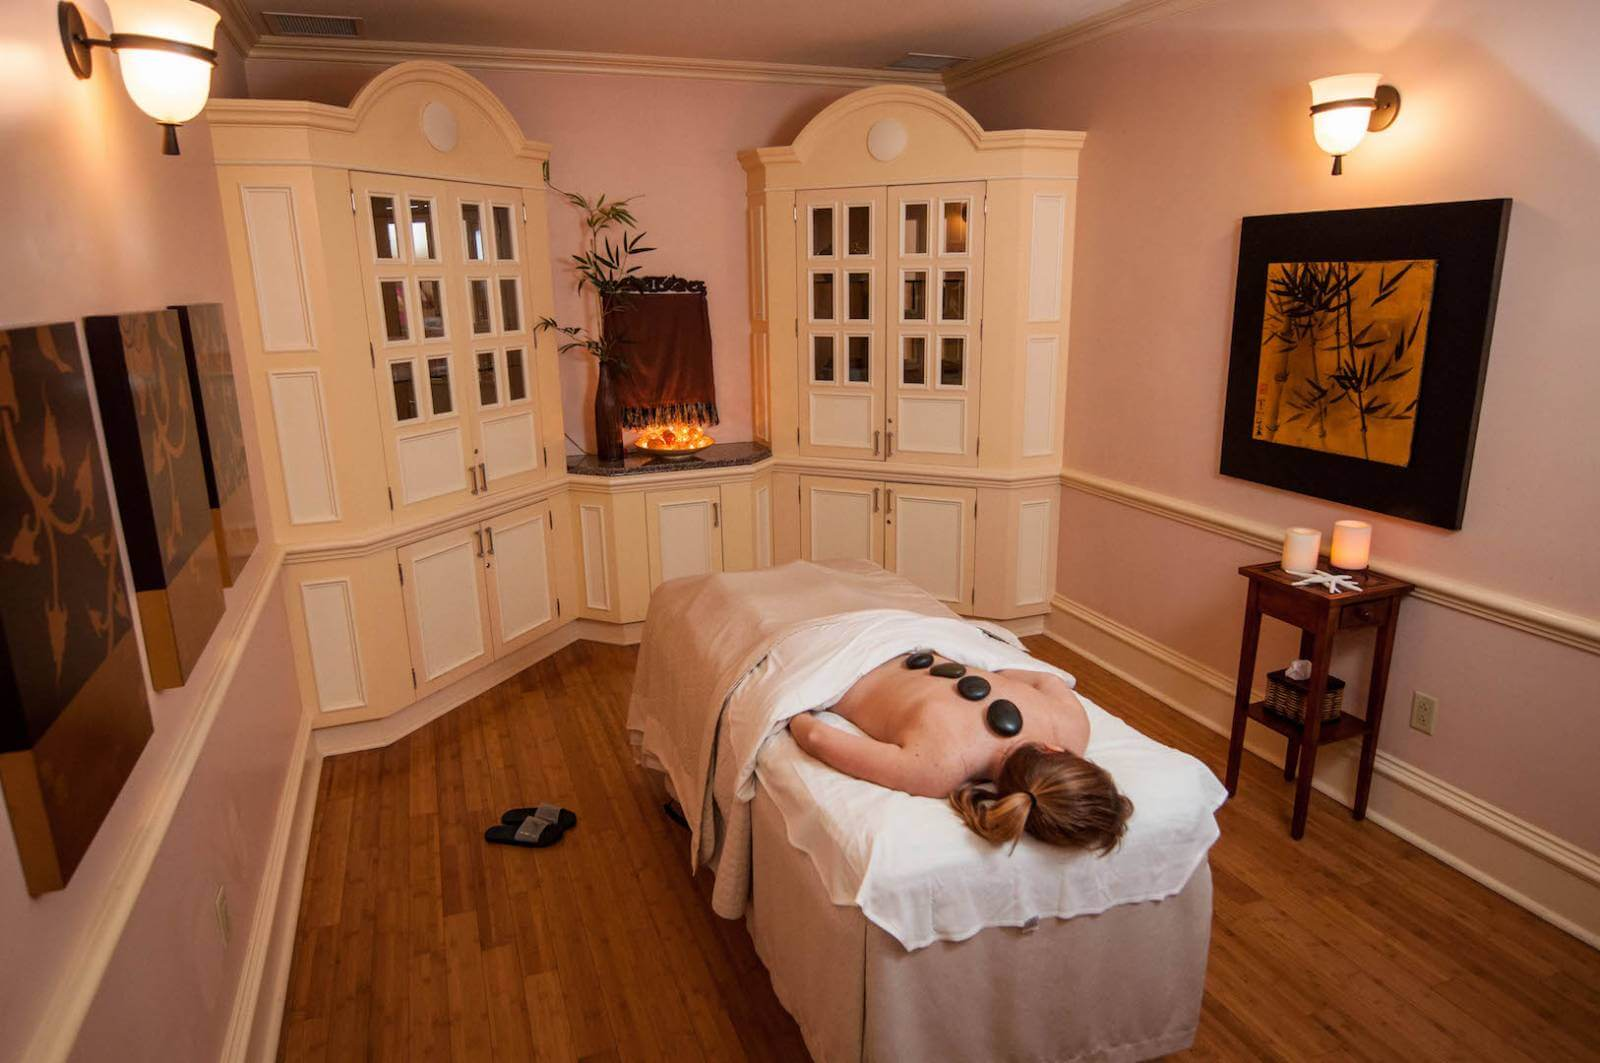 Enjoy a relaxing spa treatment on a girls weekend getaway trip to Naples, Florida. Photo by Debi Pittman Wilkey. Must Do Visitor Guides, MustDo.com.